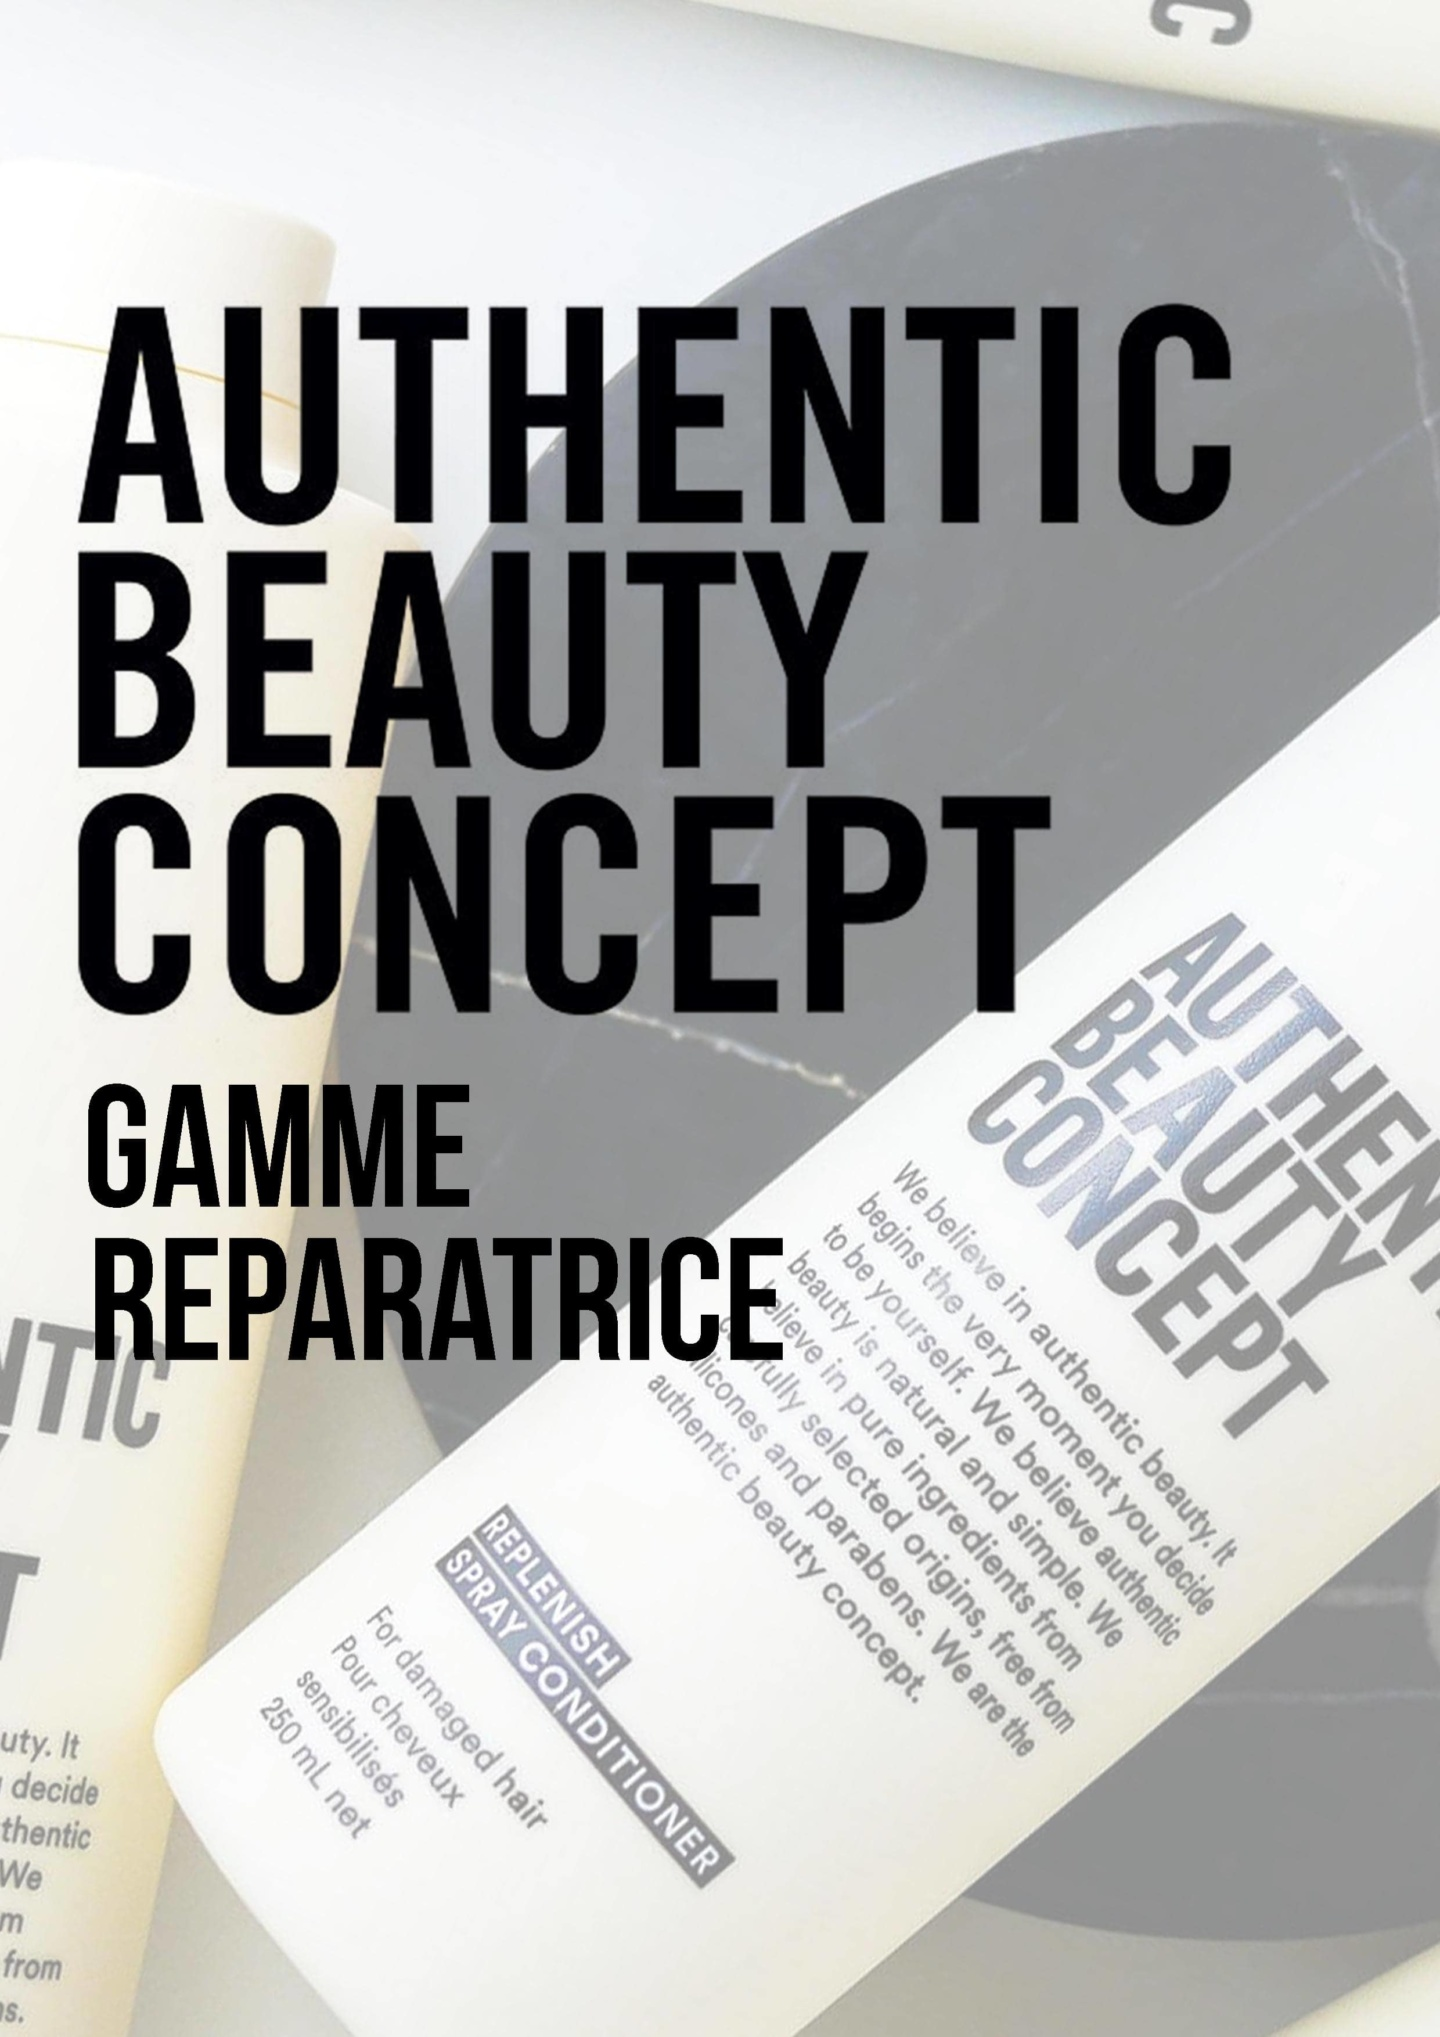 gamme reparatrice authentic beauty concept